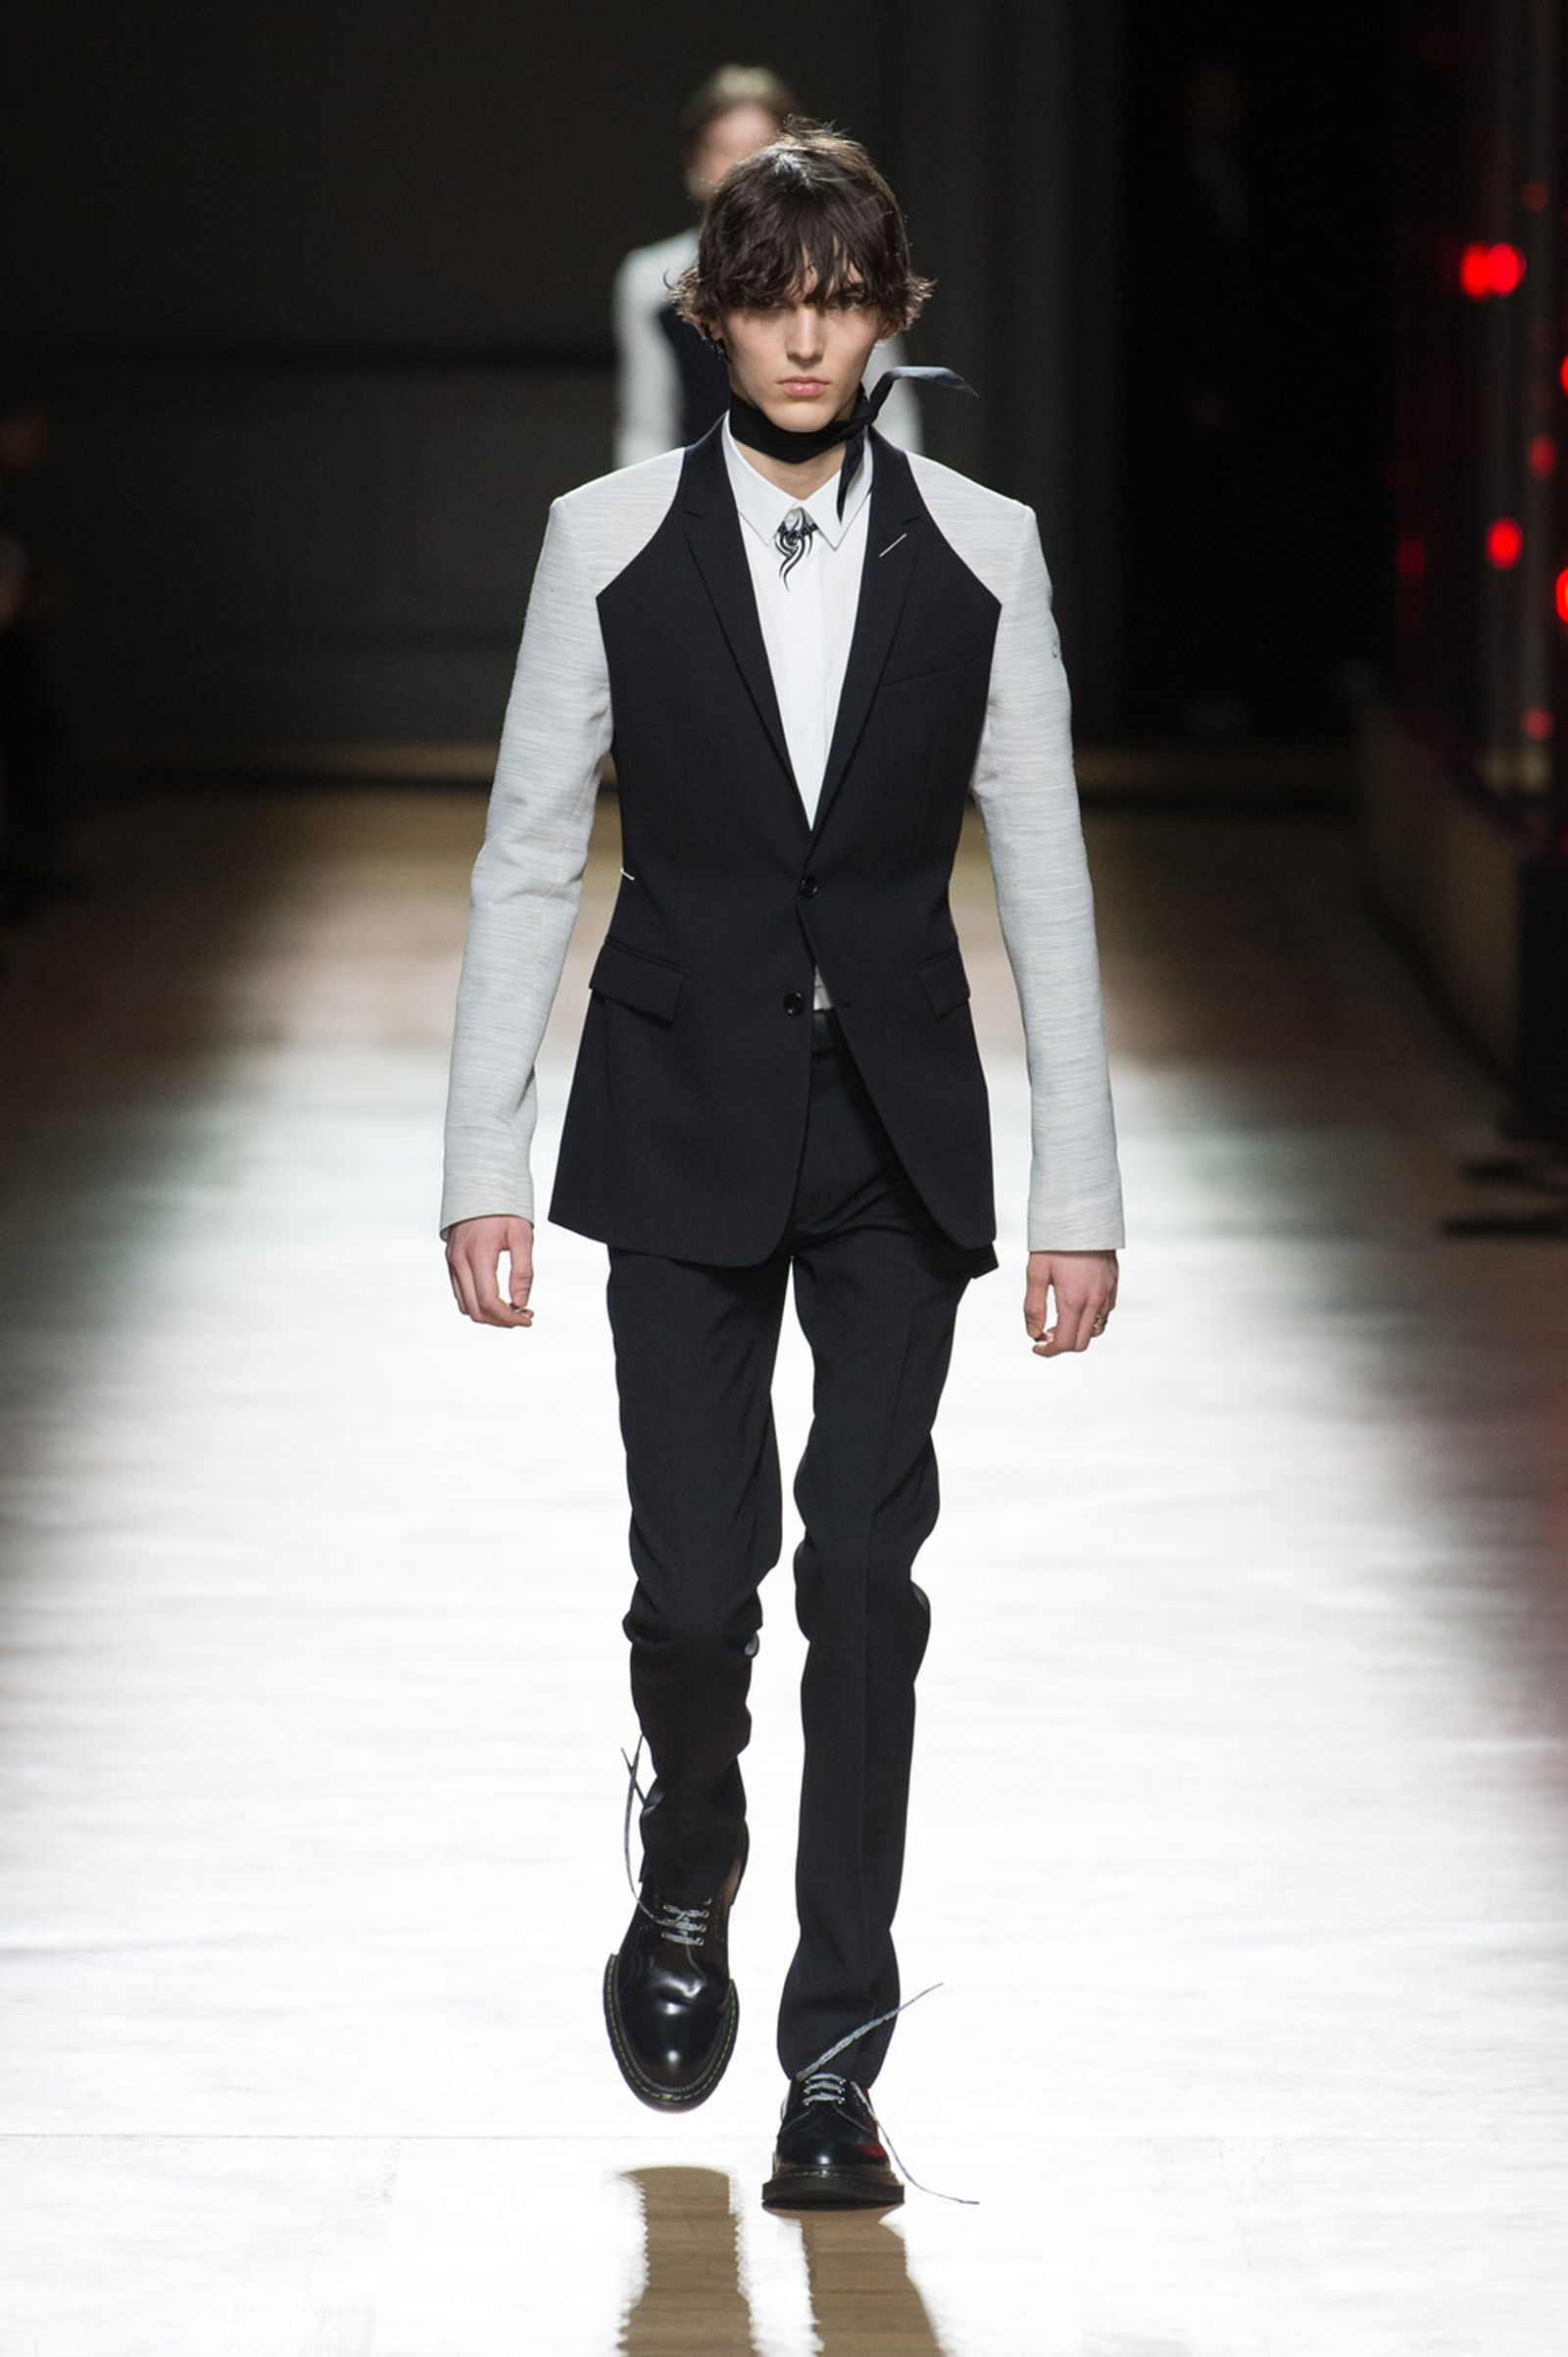 DIOR HOMME WINTER 18 19 BY PATRICE STABLE look07 Fall/WInter 2018 runway